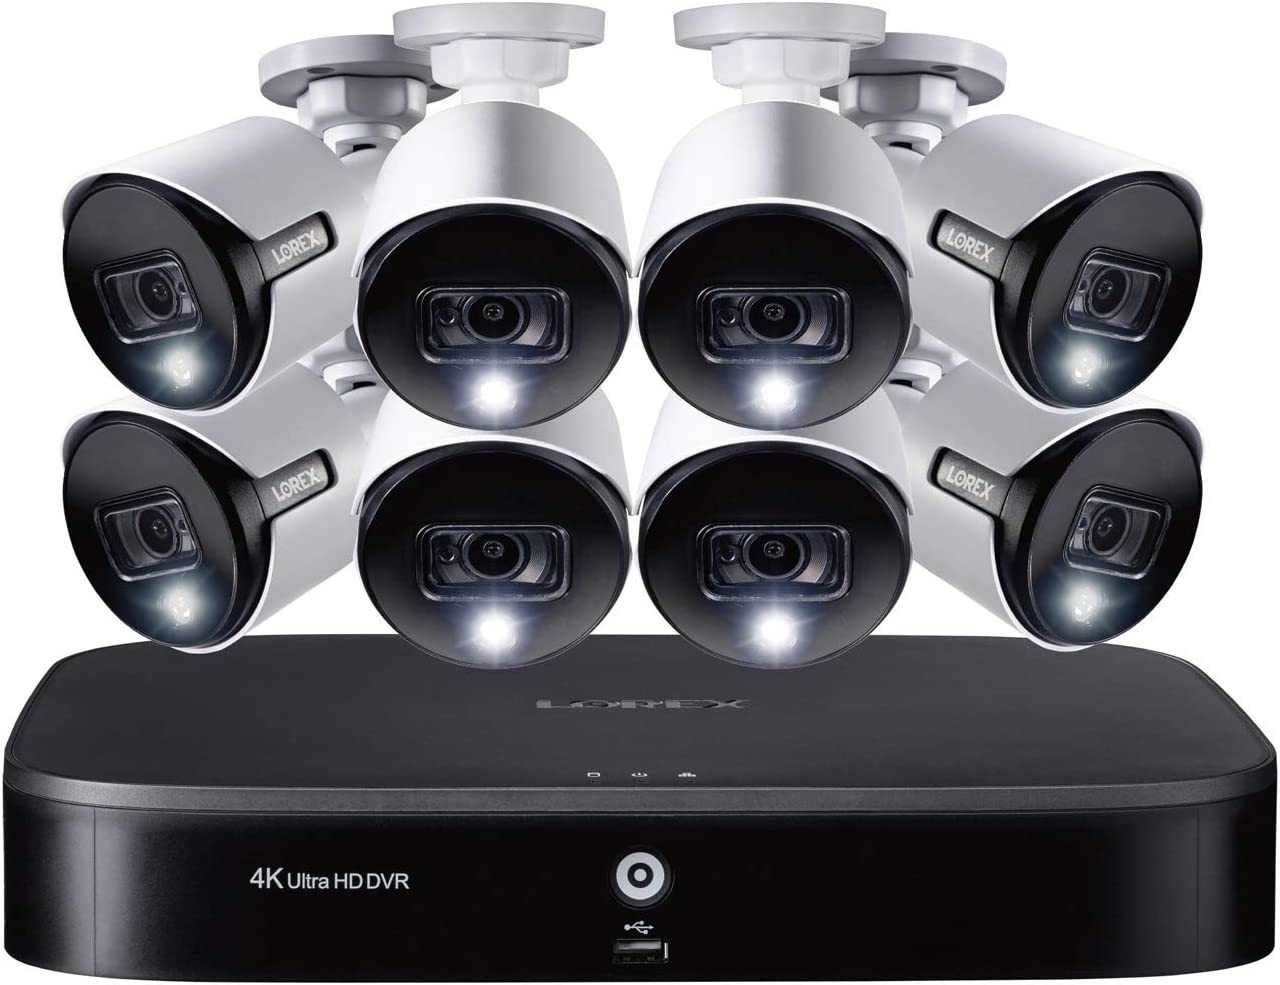 4K Ultra HD 8-Channel Security System with 2 TB DVR and Eight 4K Ultra HD Bullet Security Cameras with Color Night Vision, Active-Deterrence, and Smart Home Voice Control